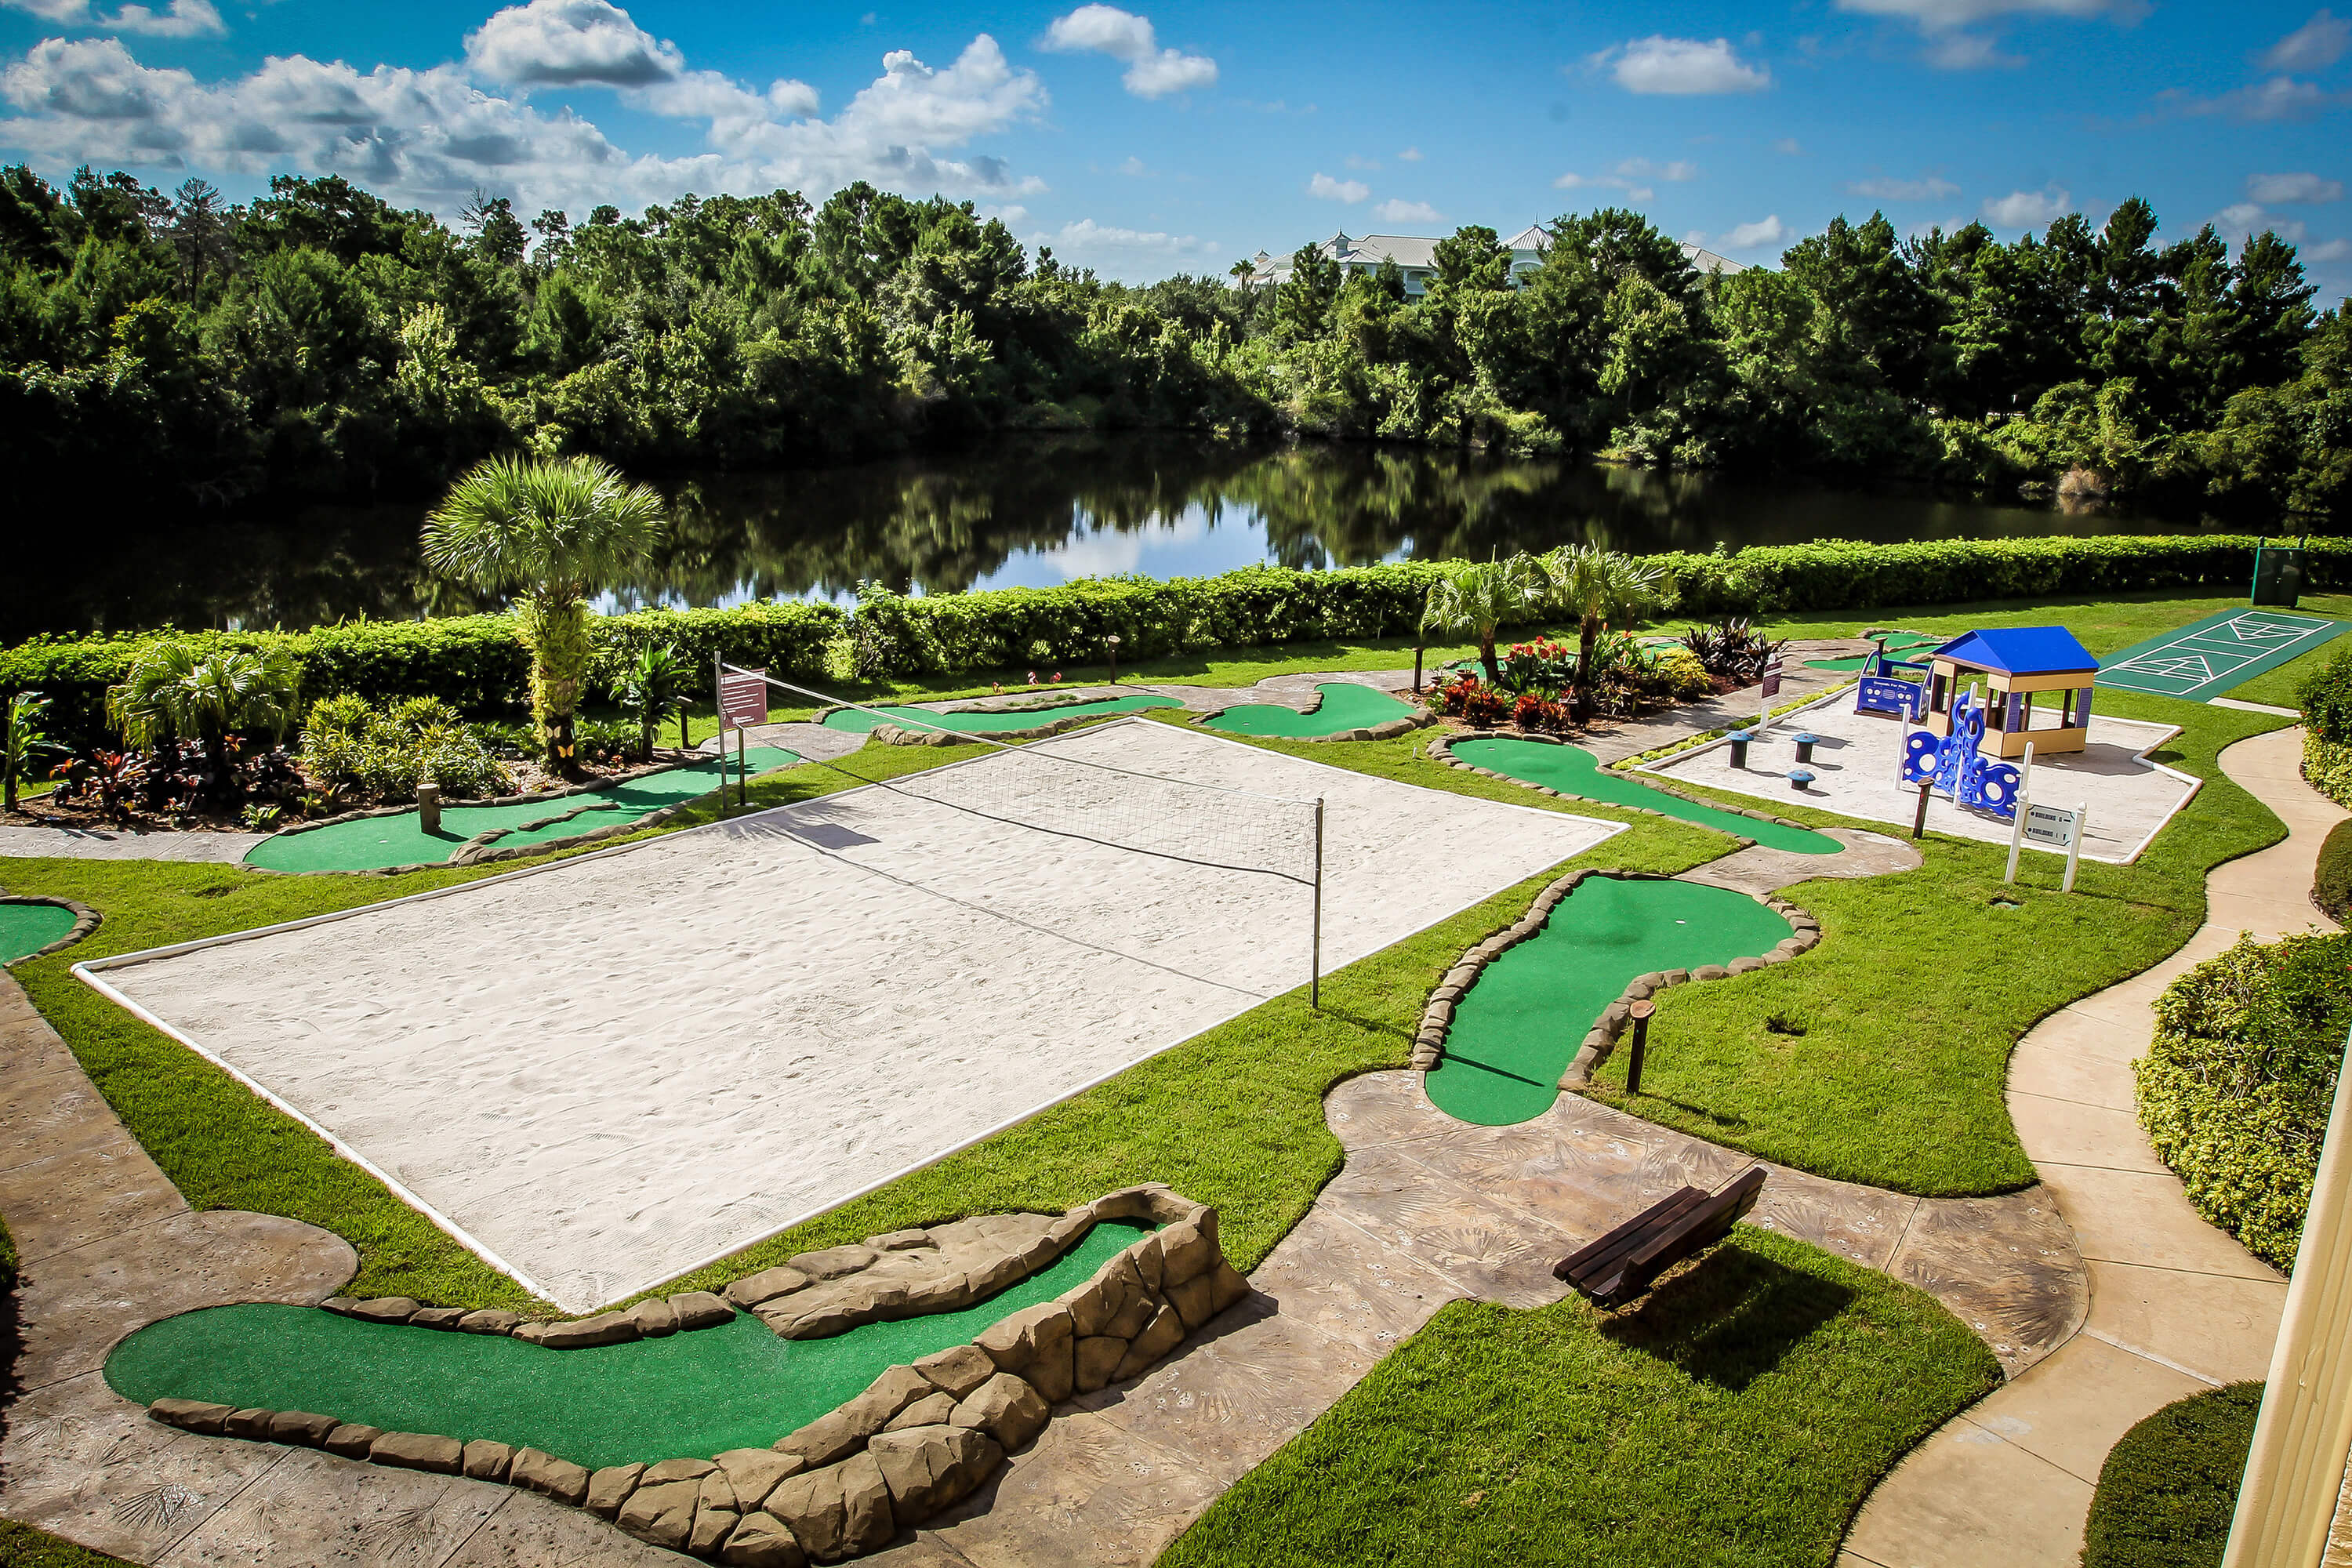 Sand Volleyball Court surrounded by Mini Golf Course | Westgate Leisure Resort